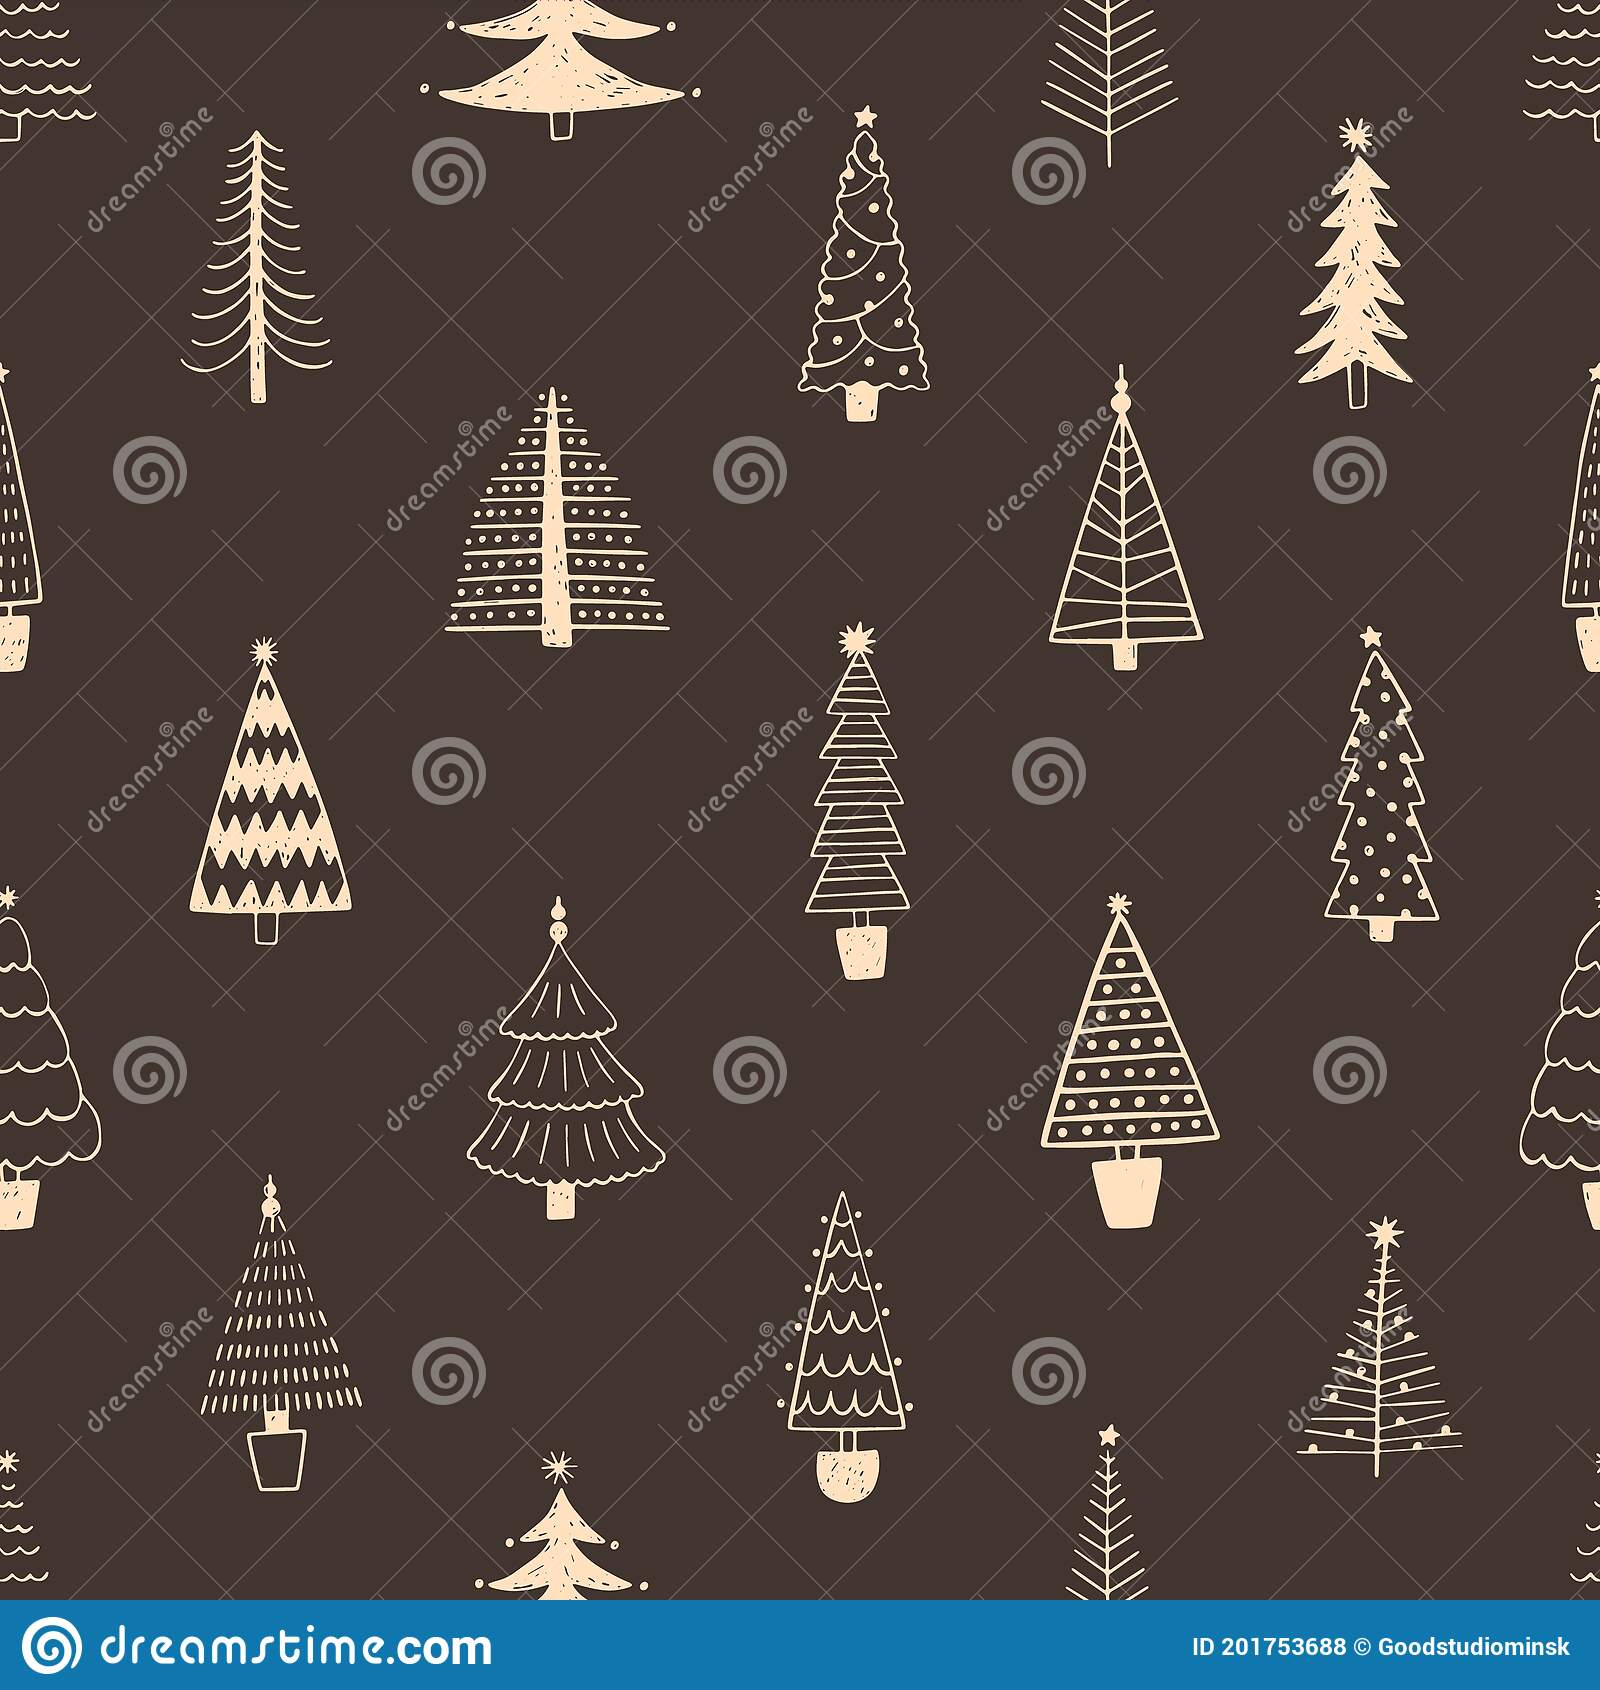 Seamless Pattern With Simple Minimalist Christmas Trees Decorated With Stars And Garlands Doodle Holiday Fir For Stock Vector Illustration Of Decorated Firtree 201753688